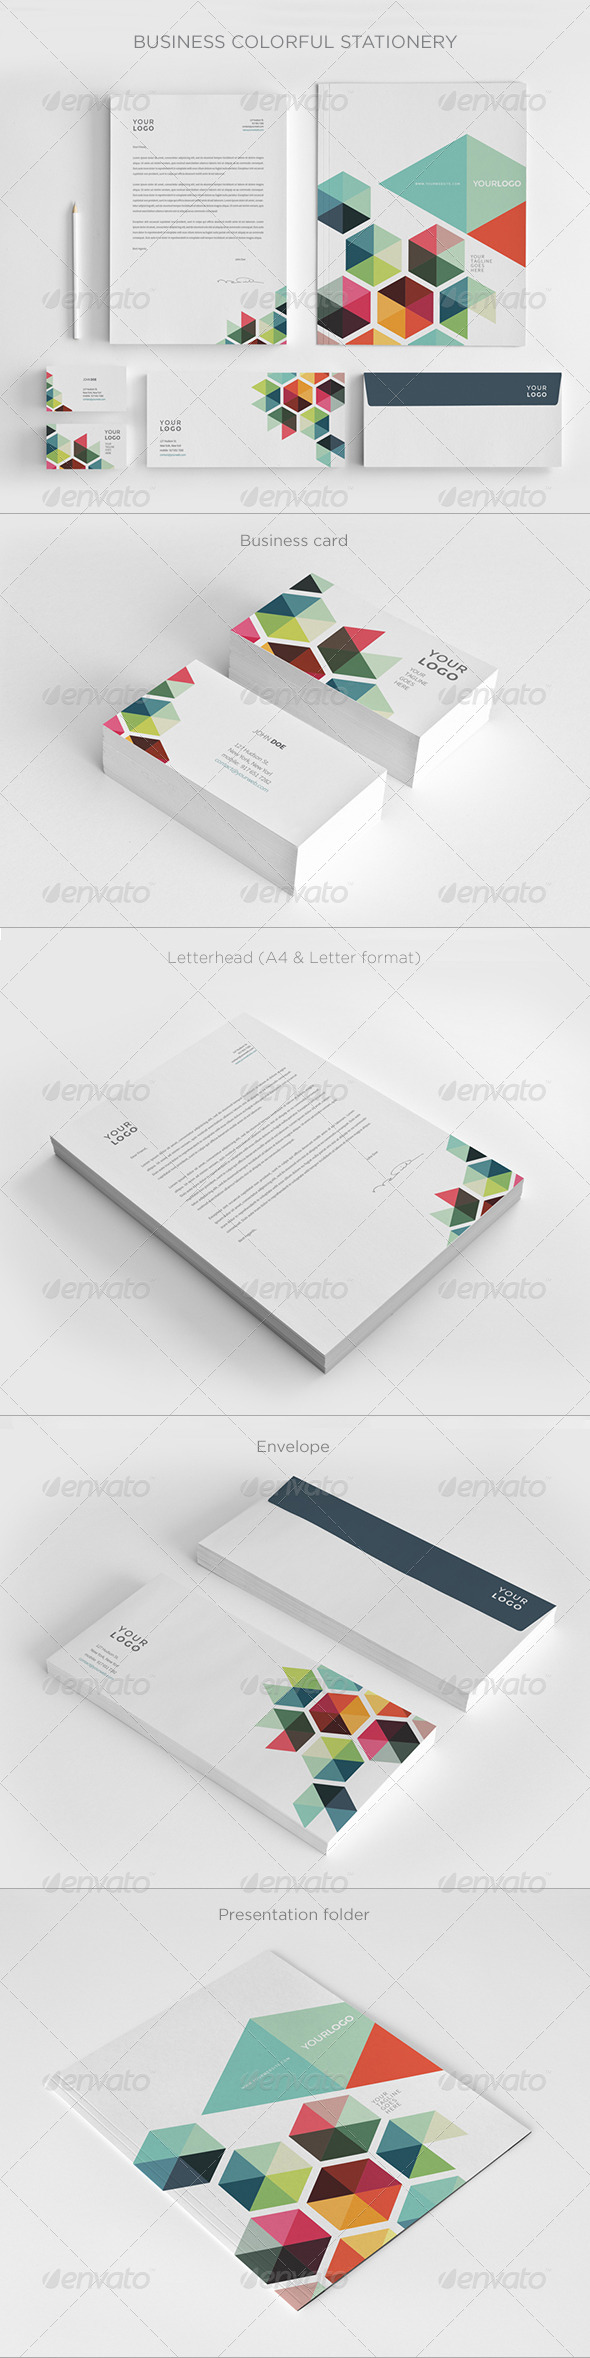 GraphicRiver Business Colorful Stationery 7717637